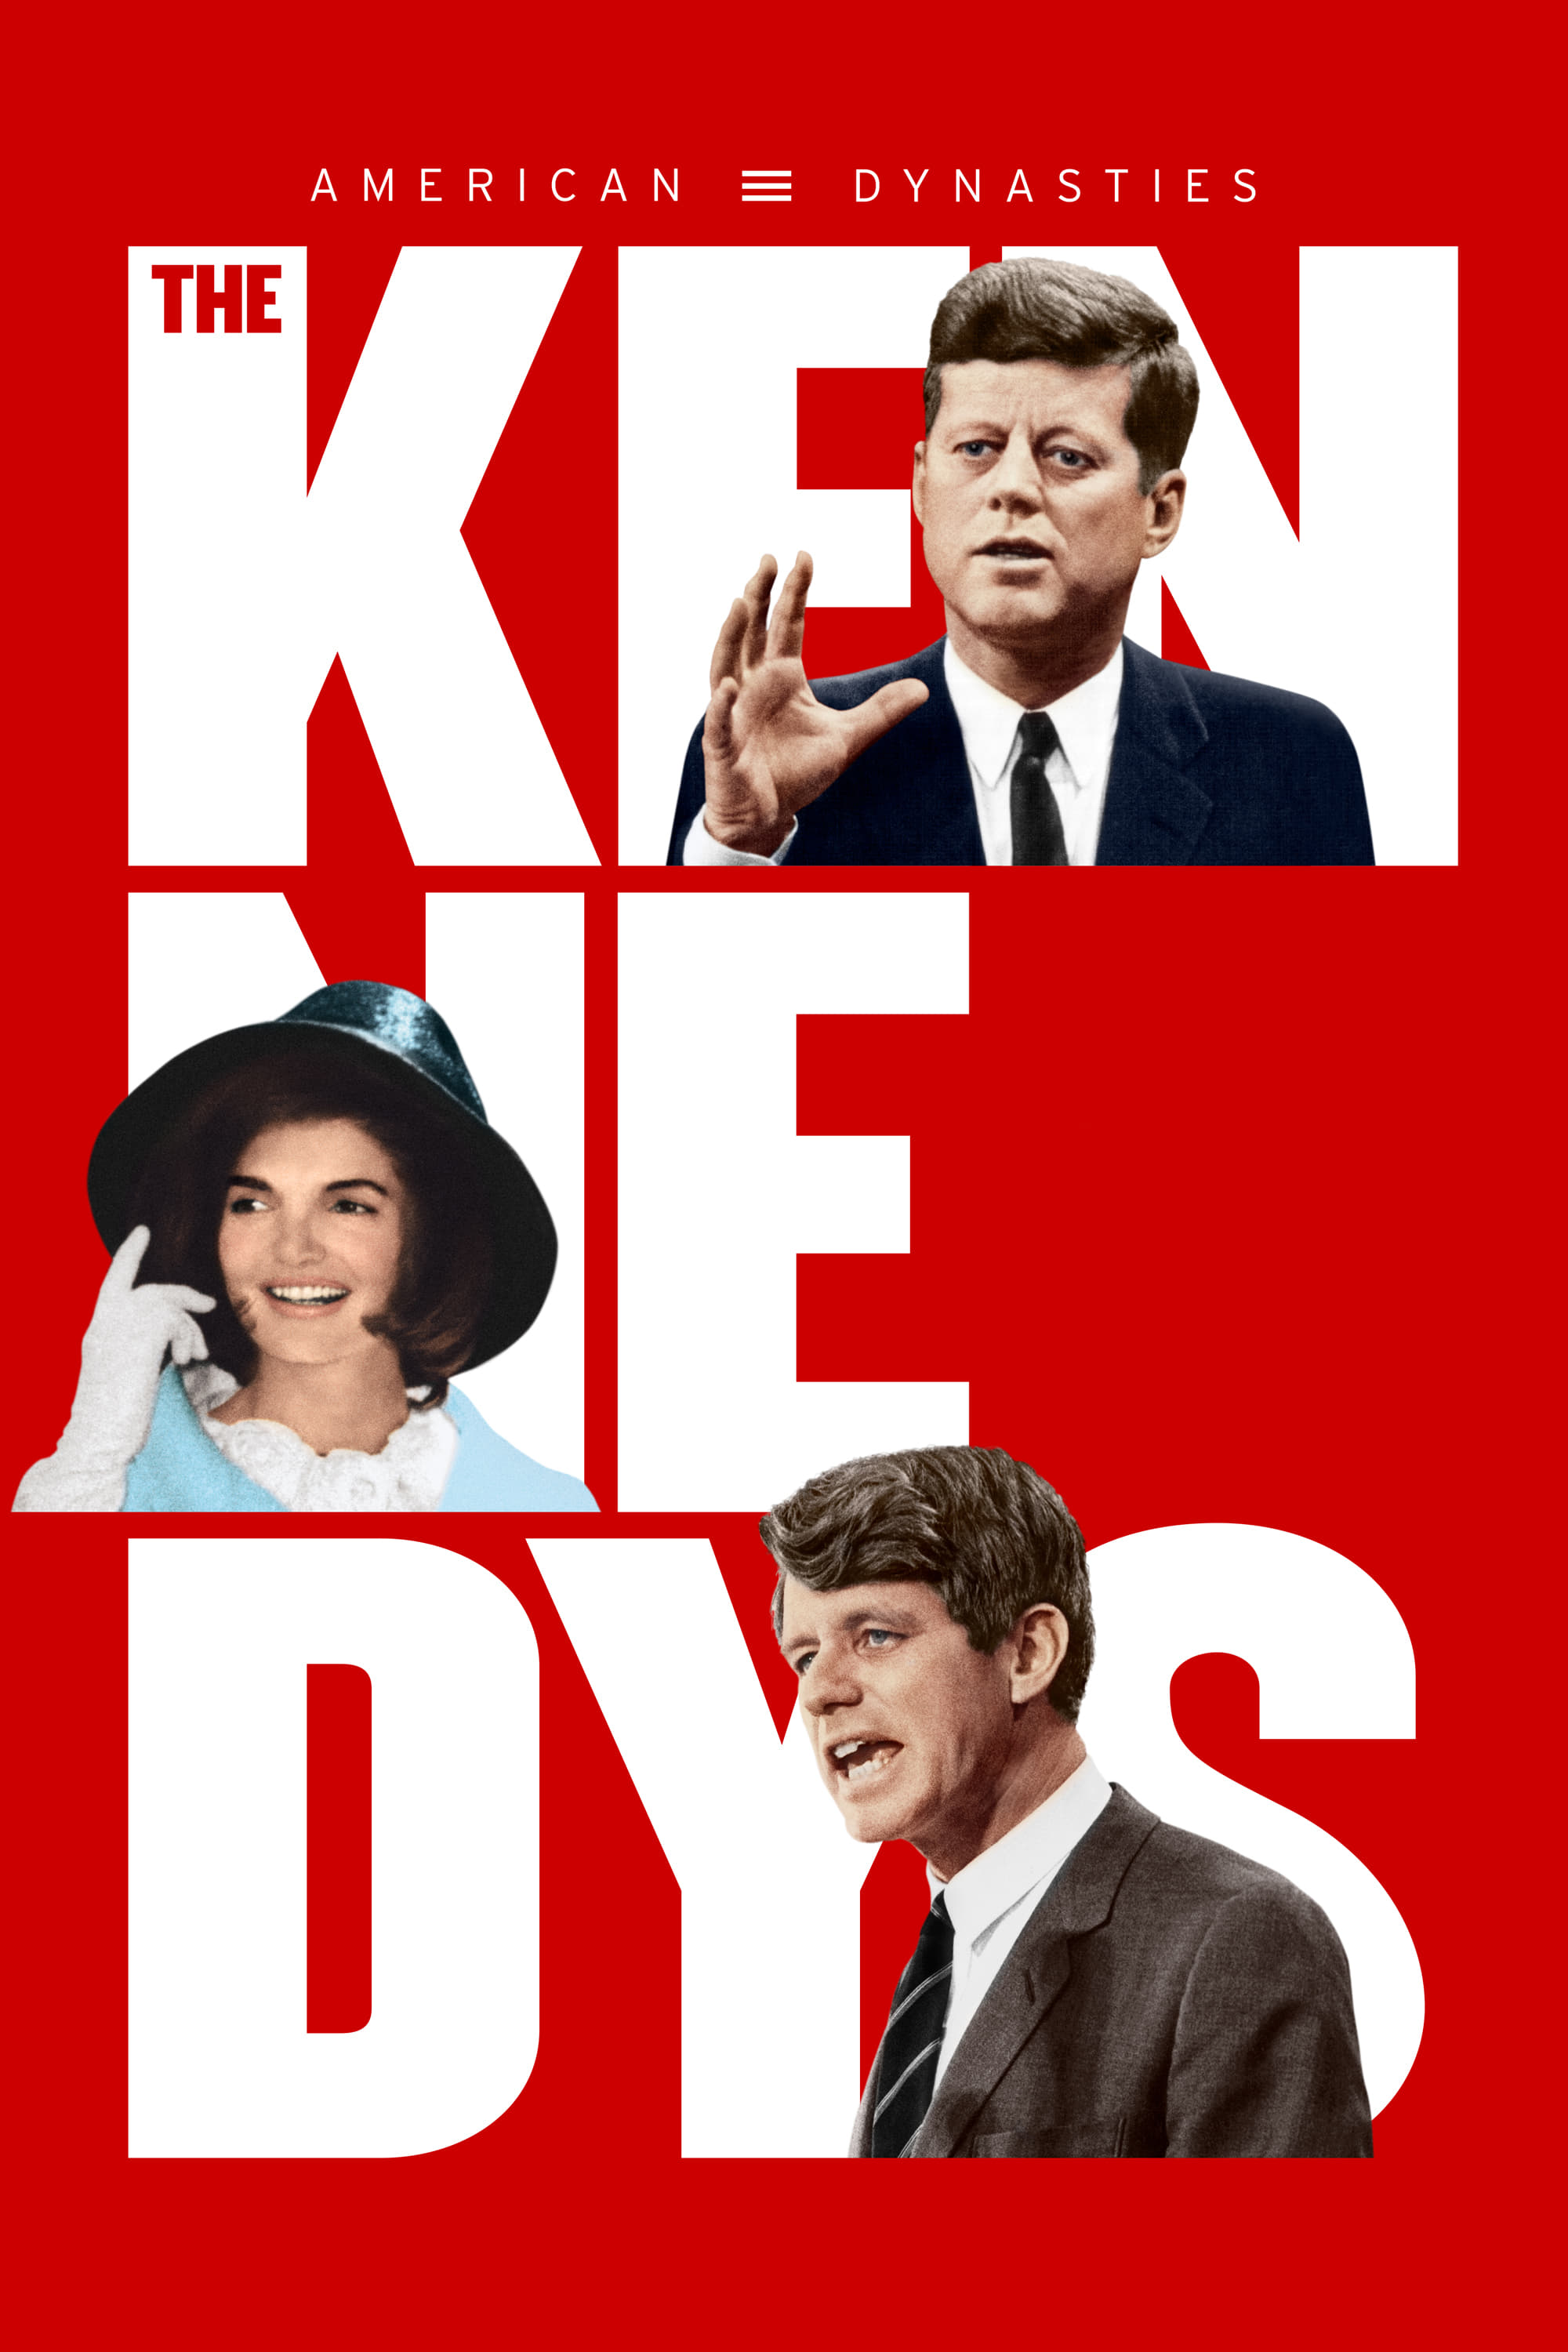 American Dynasties: The Kennedys Poster